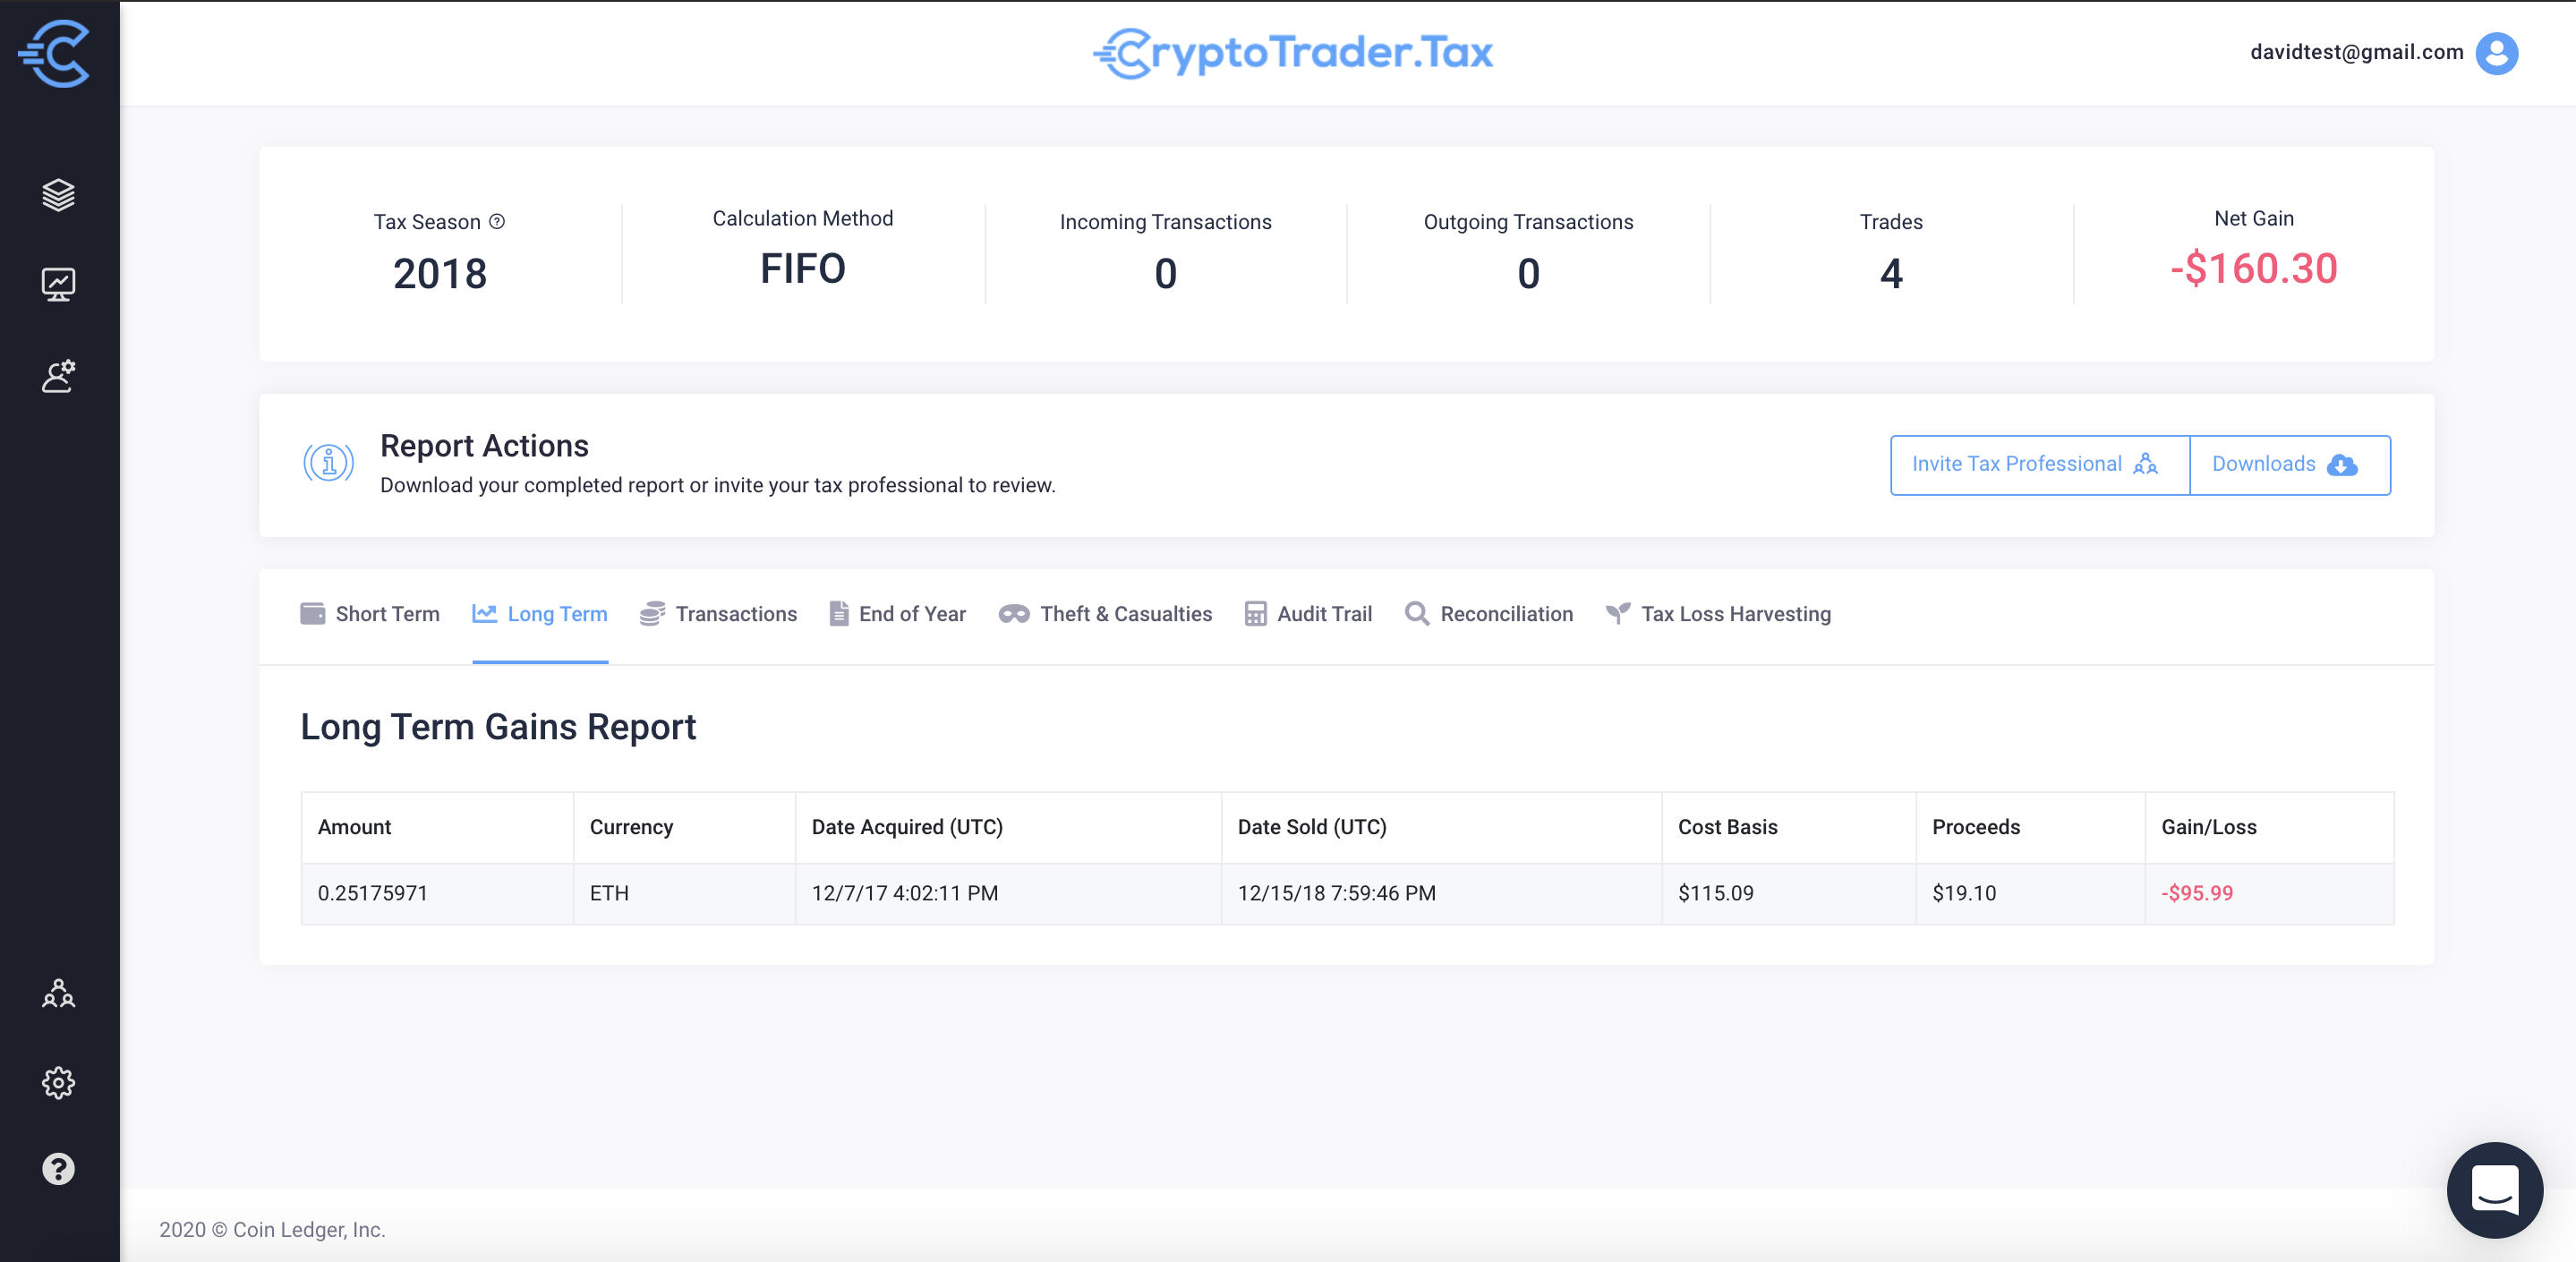 CryptoTrader.Tax Tax Report